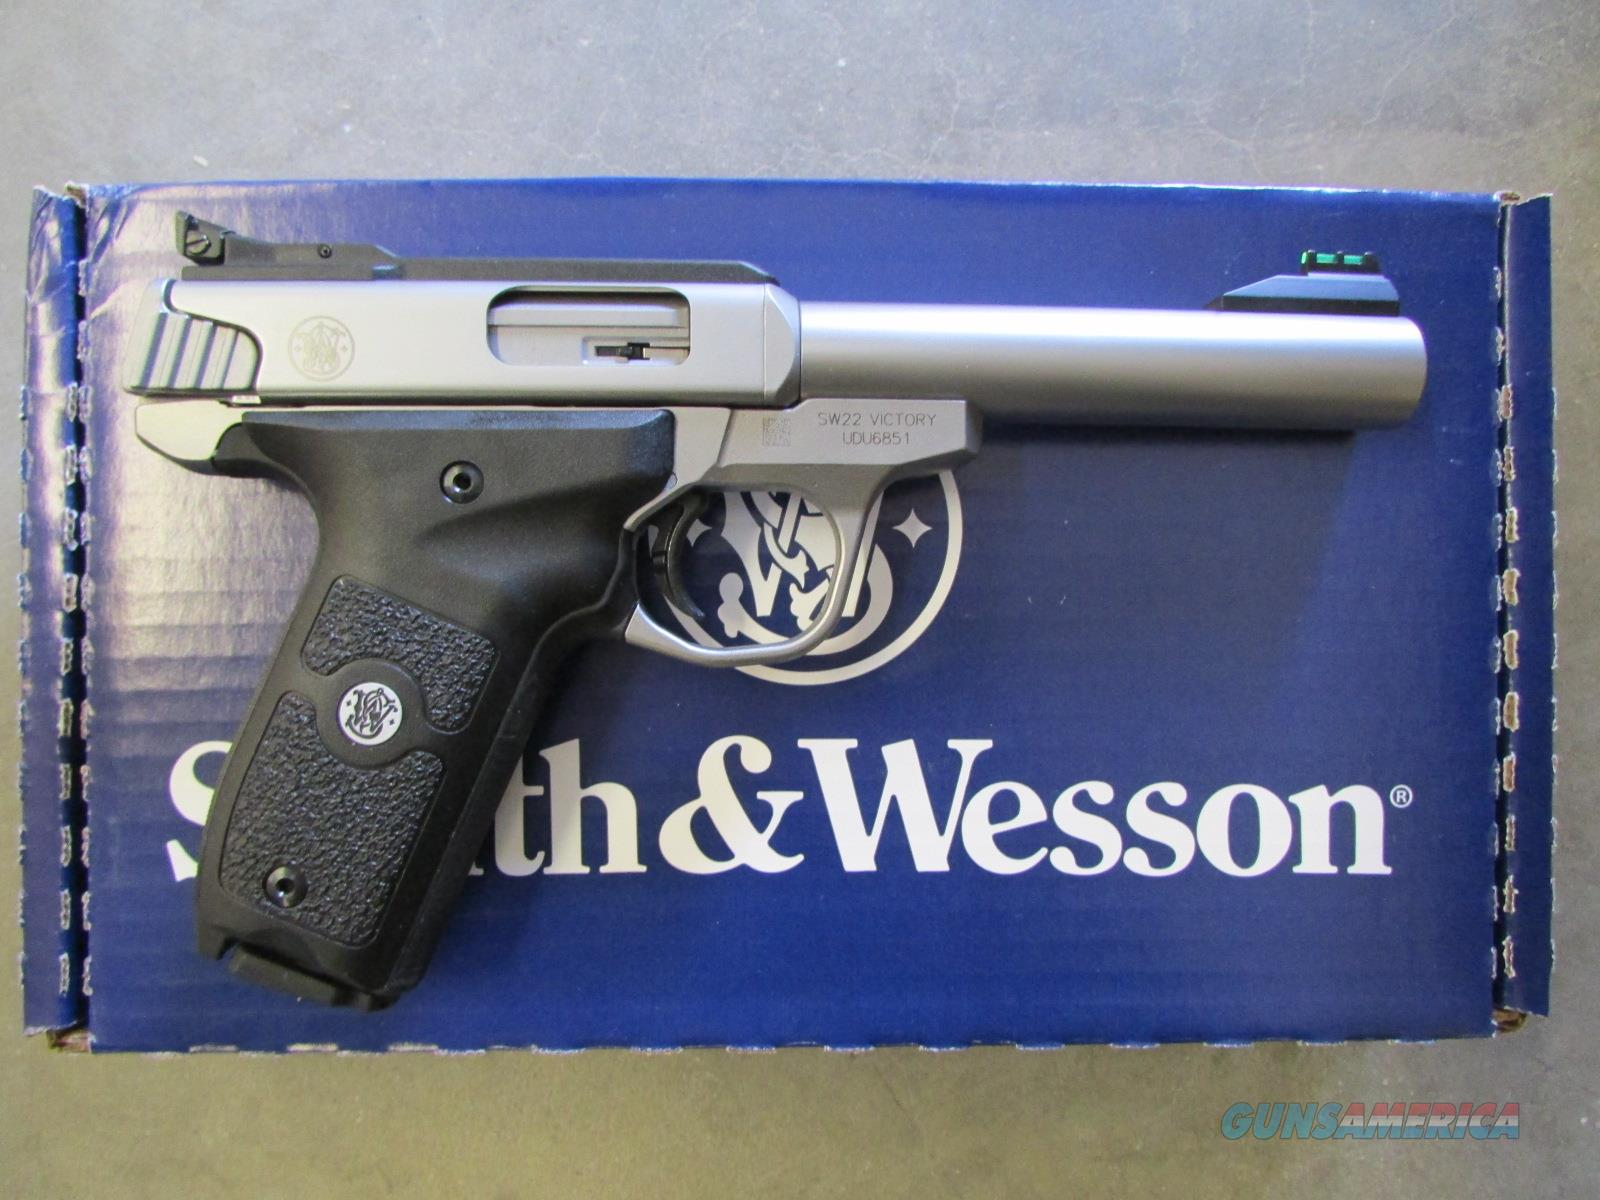 Smith & Wesson SW22 Victory Stainless .22 LR 108490  Guns > Pistols > Smith & Wesson Pistols - Autos > .22 Autos